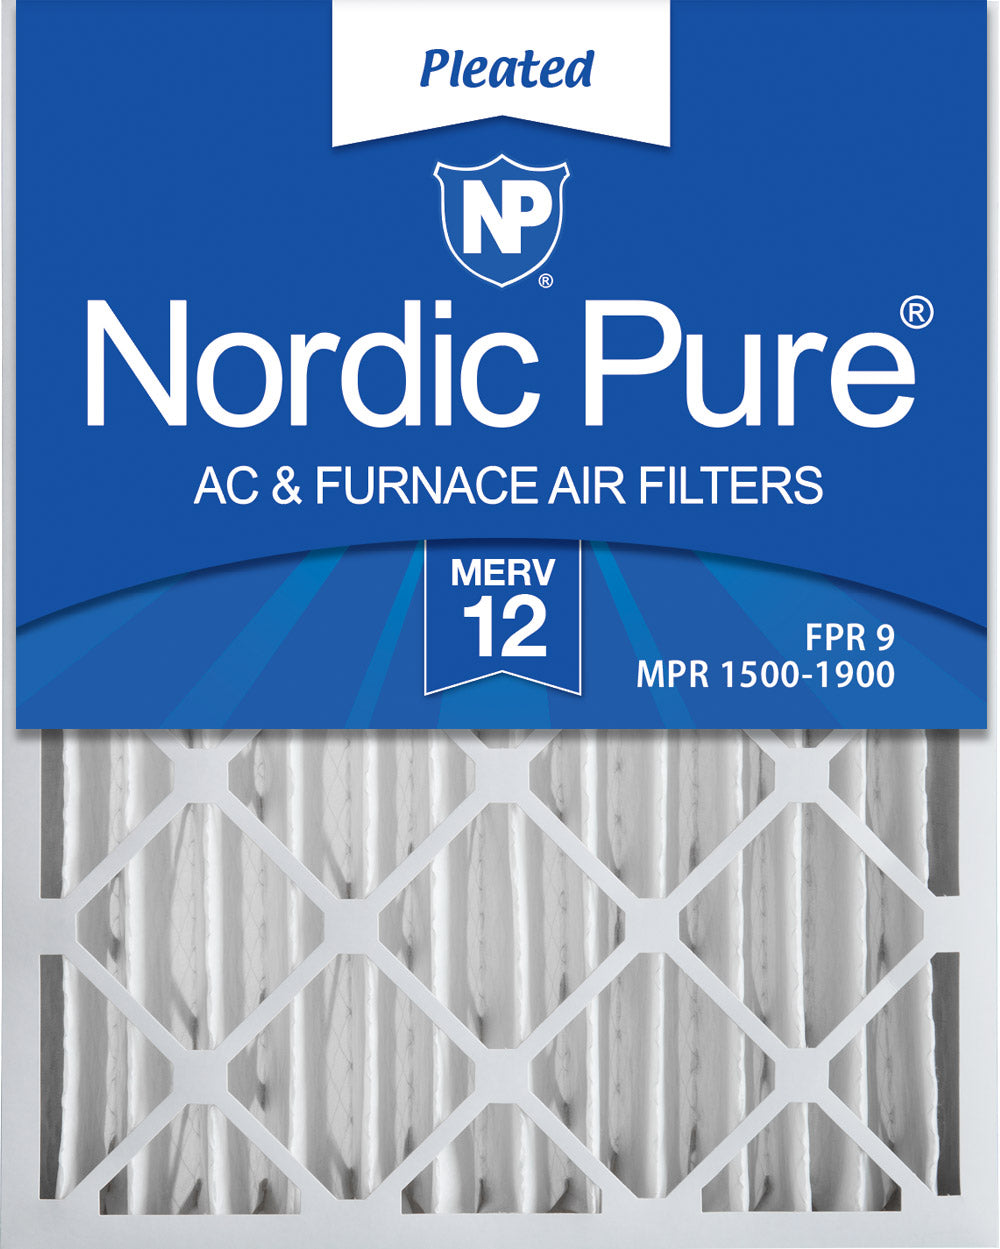 16x20x4 (3 5/8) Pleated MERV 12 Air Filters 6 Pack